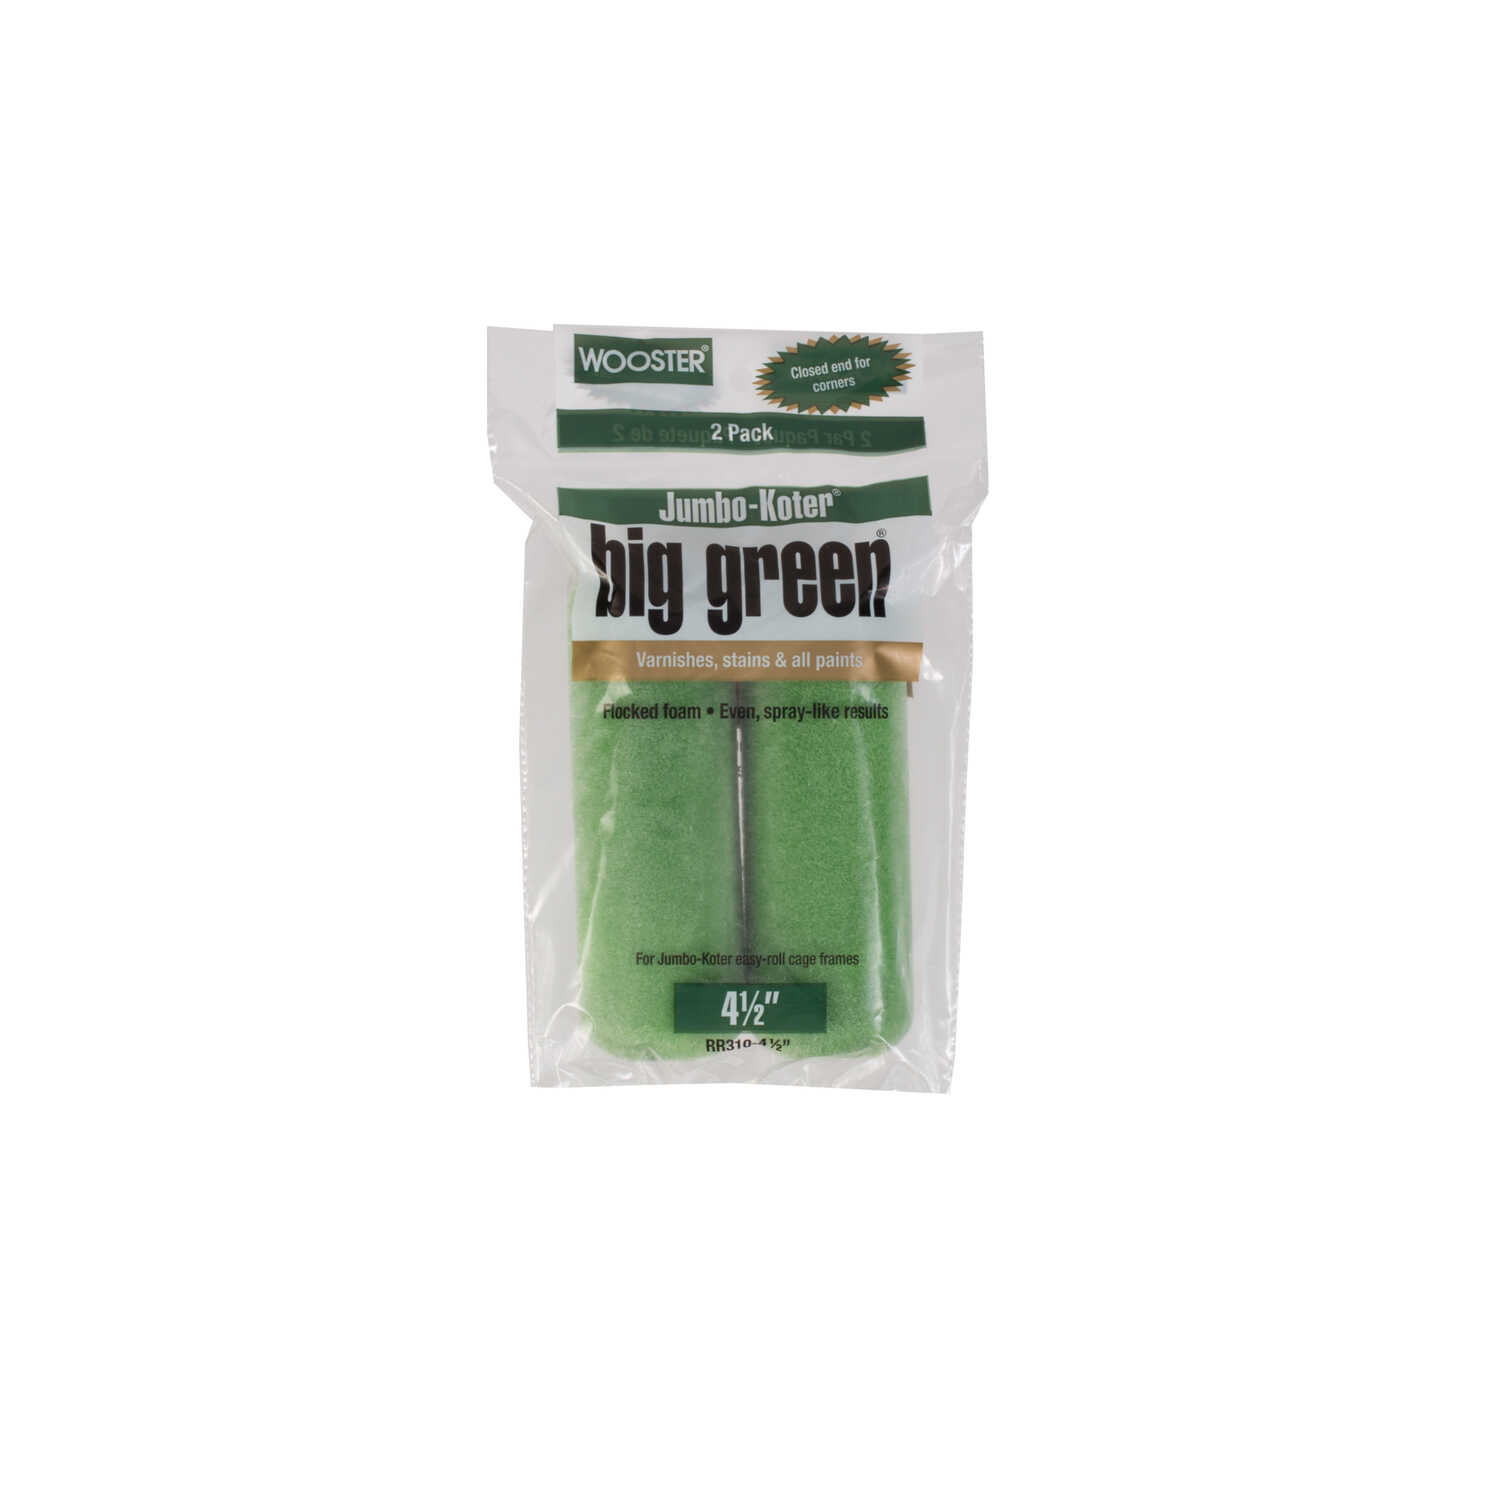 Wooster  Big Green  Flocked Foam  3/8 in.  x 4-1/2 in. W Trim  Paint Roller Cover  For Smooth Surfac